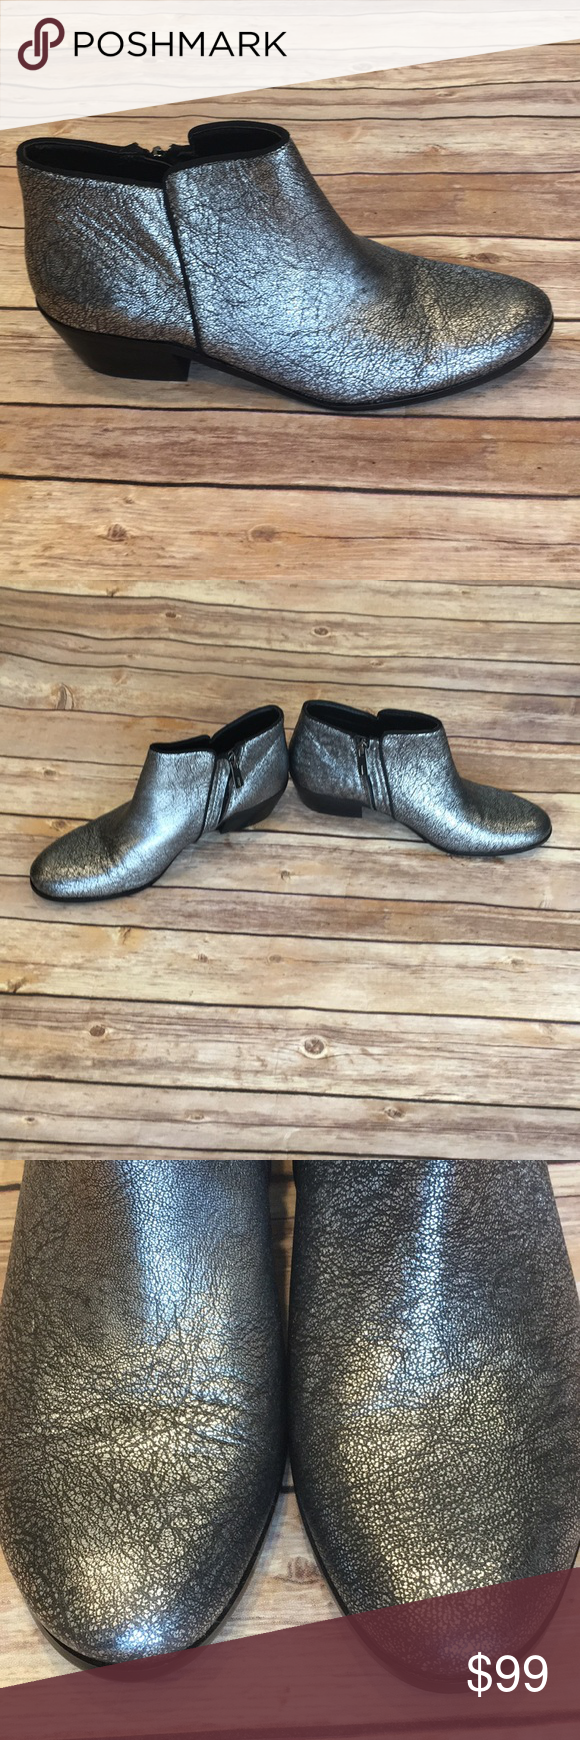 "ef501dd23f2926 SAM EDELMAN ""Petty"" metallic silver booties (9.5) Beautiful like new  condition booties"